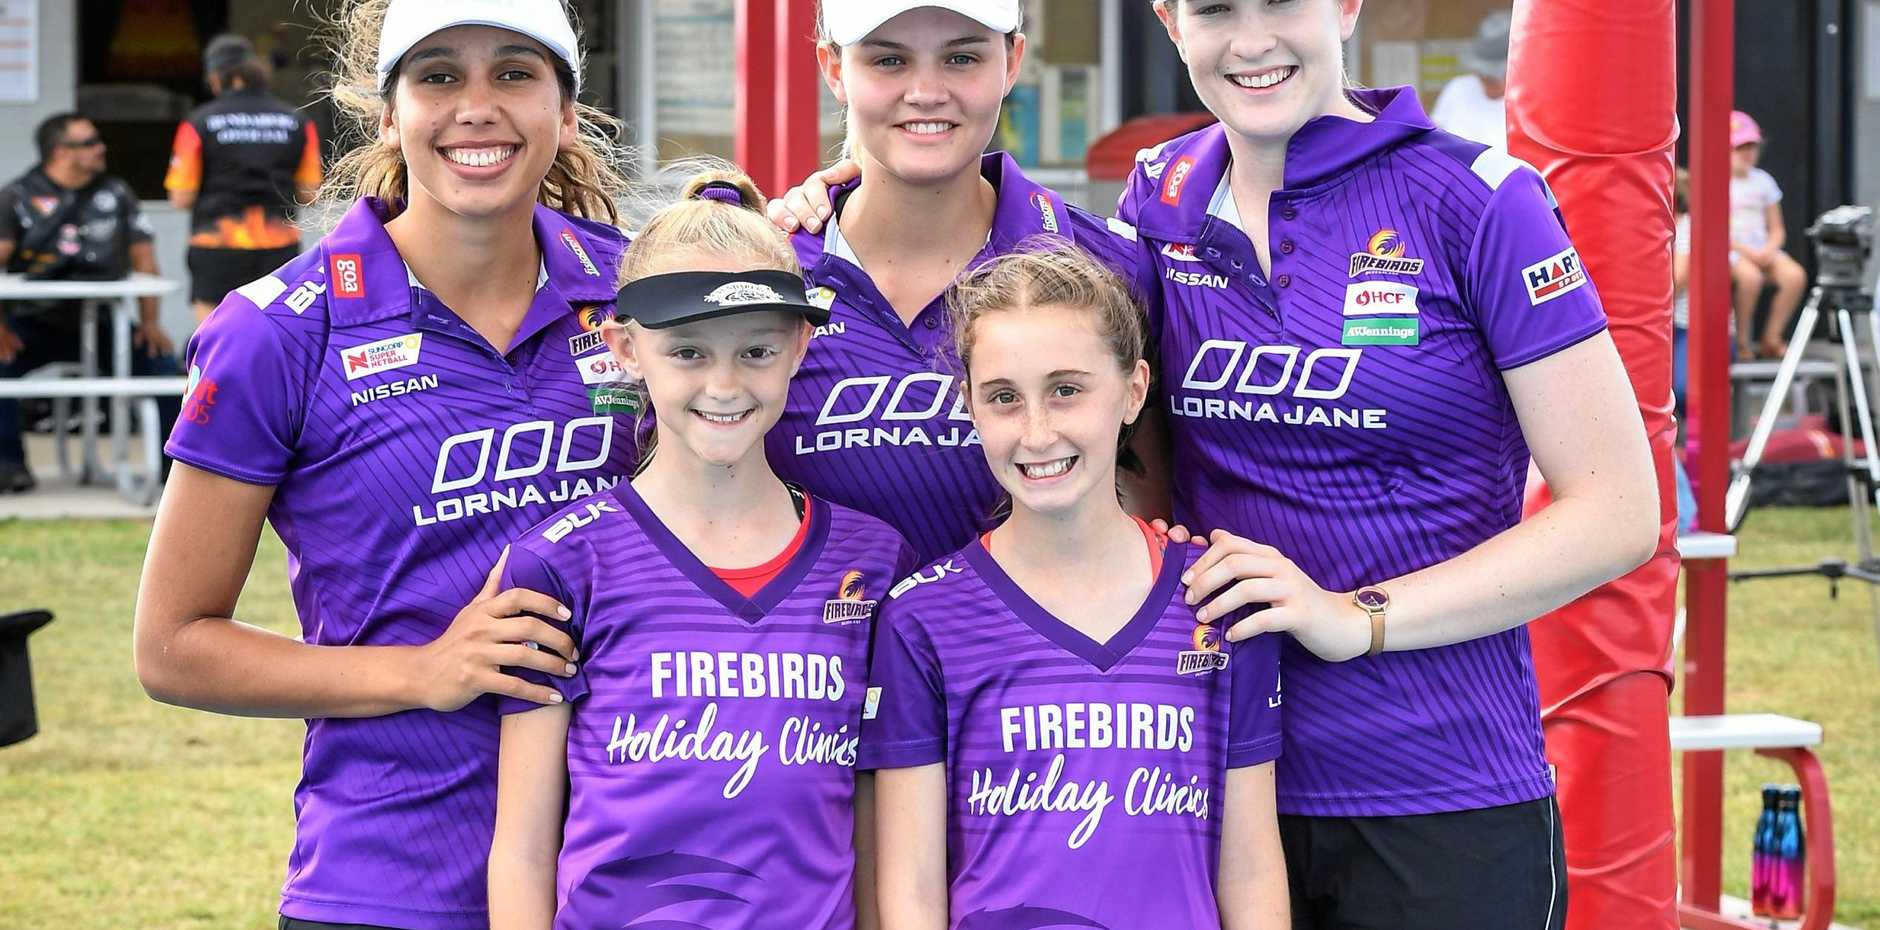 ALL SMILES: Queensland Firebirds players Jemma Mi Mi, Tippah Dwan and Tara Hinchliffe meet two of their biggest fans, Caitlyn Weston and Elisabeth Pitt.